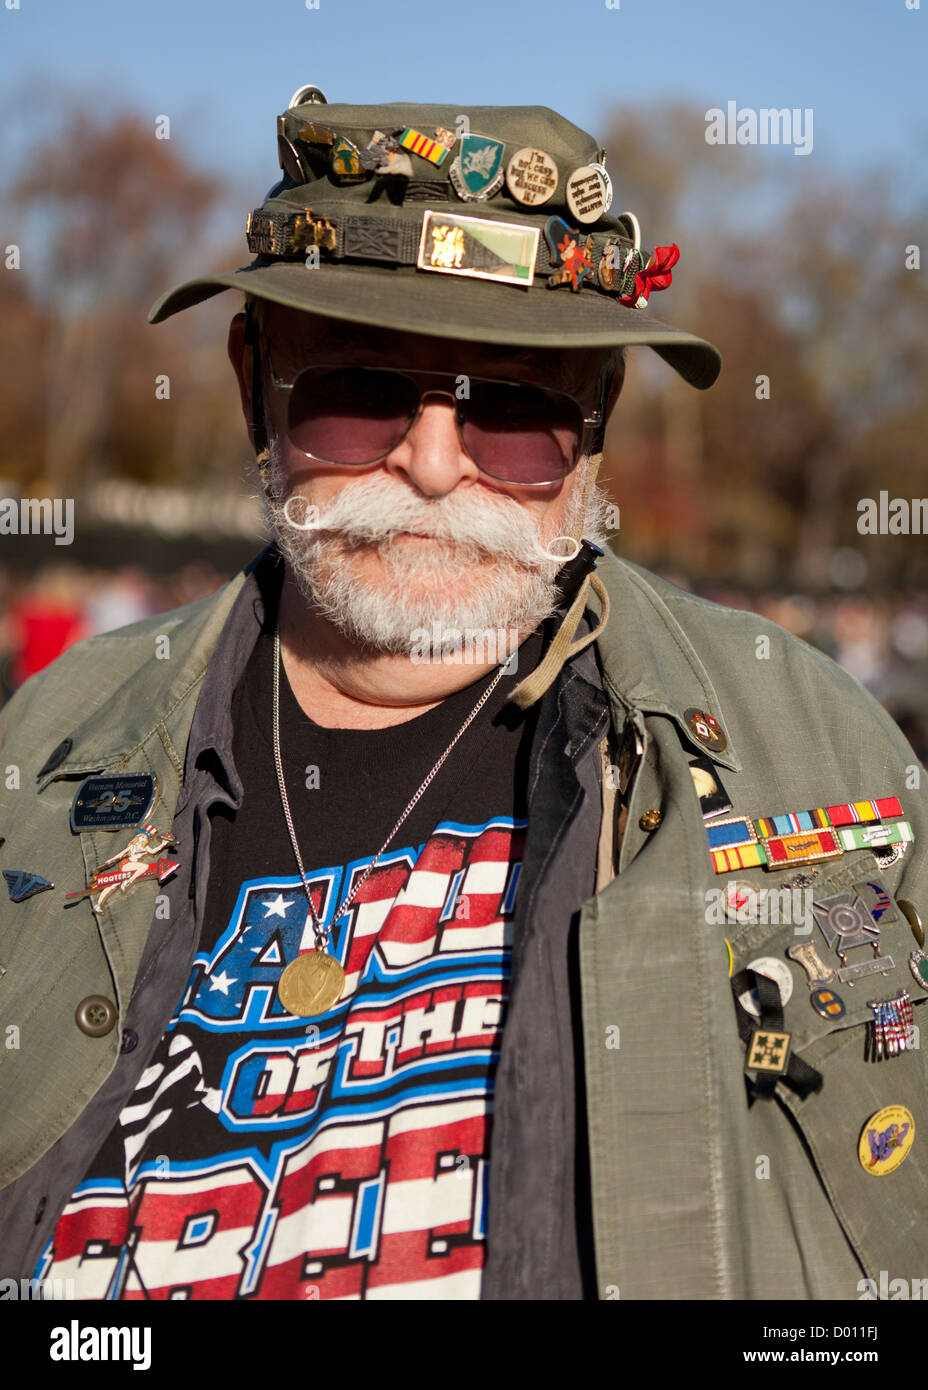 US Vietnam War veteran with medals and honors - Stock Image